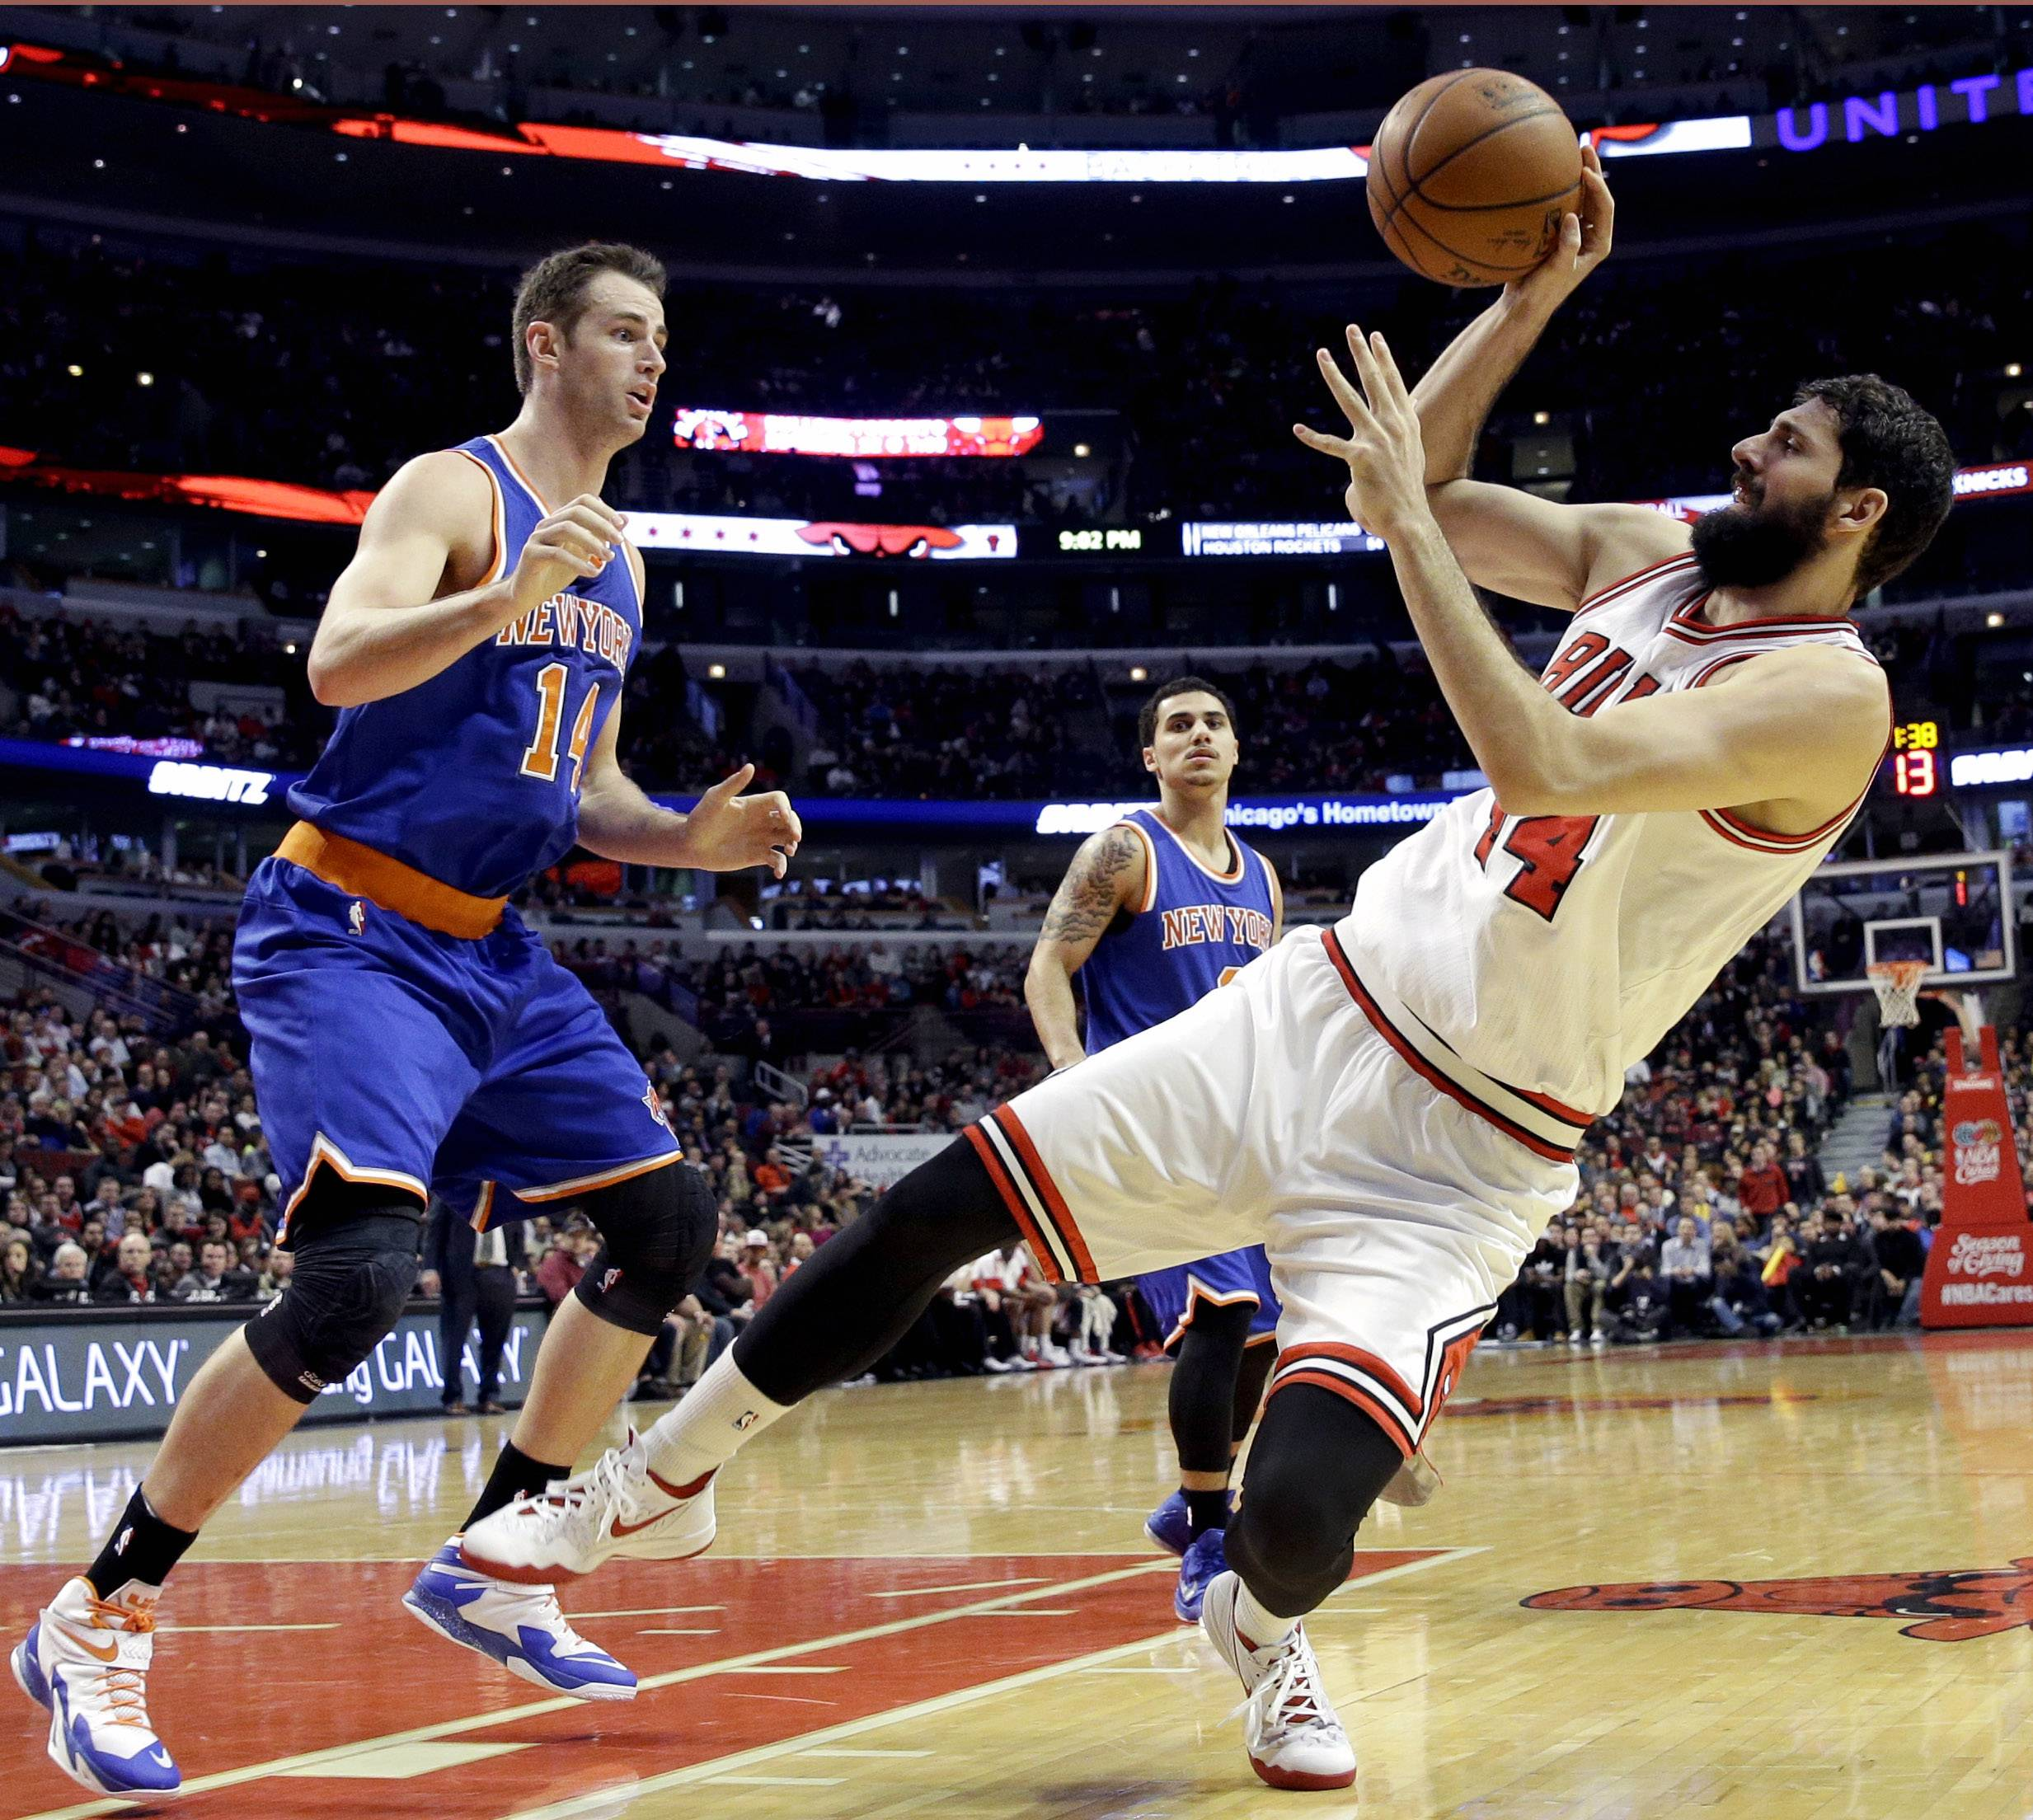 The Bulls' Nikola Mirotic may quickly become one of the NBA's most dangerous X-factors, as evidenced by his 27 points and 6-for-6 performance from 3-point range in Friday's win at Memphis according to Mike McGraw.